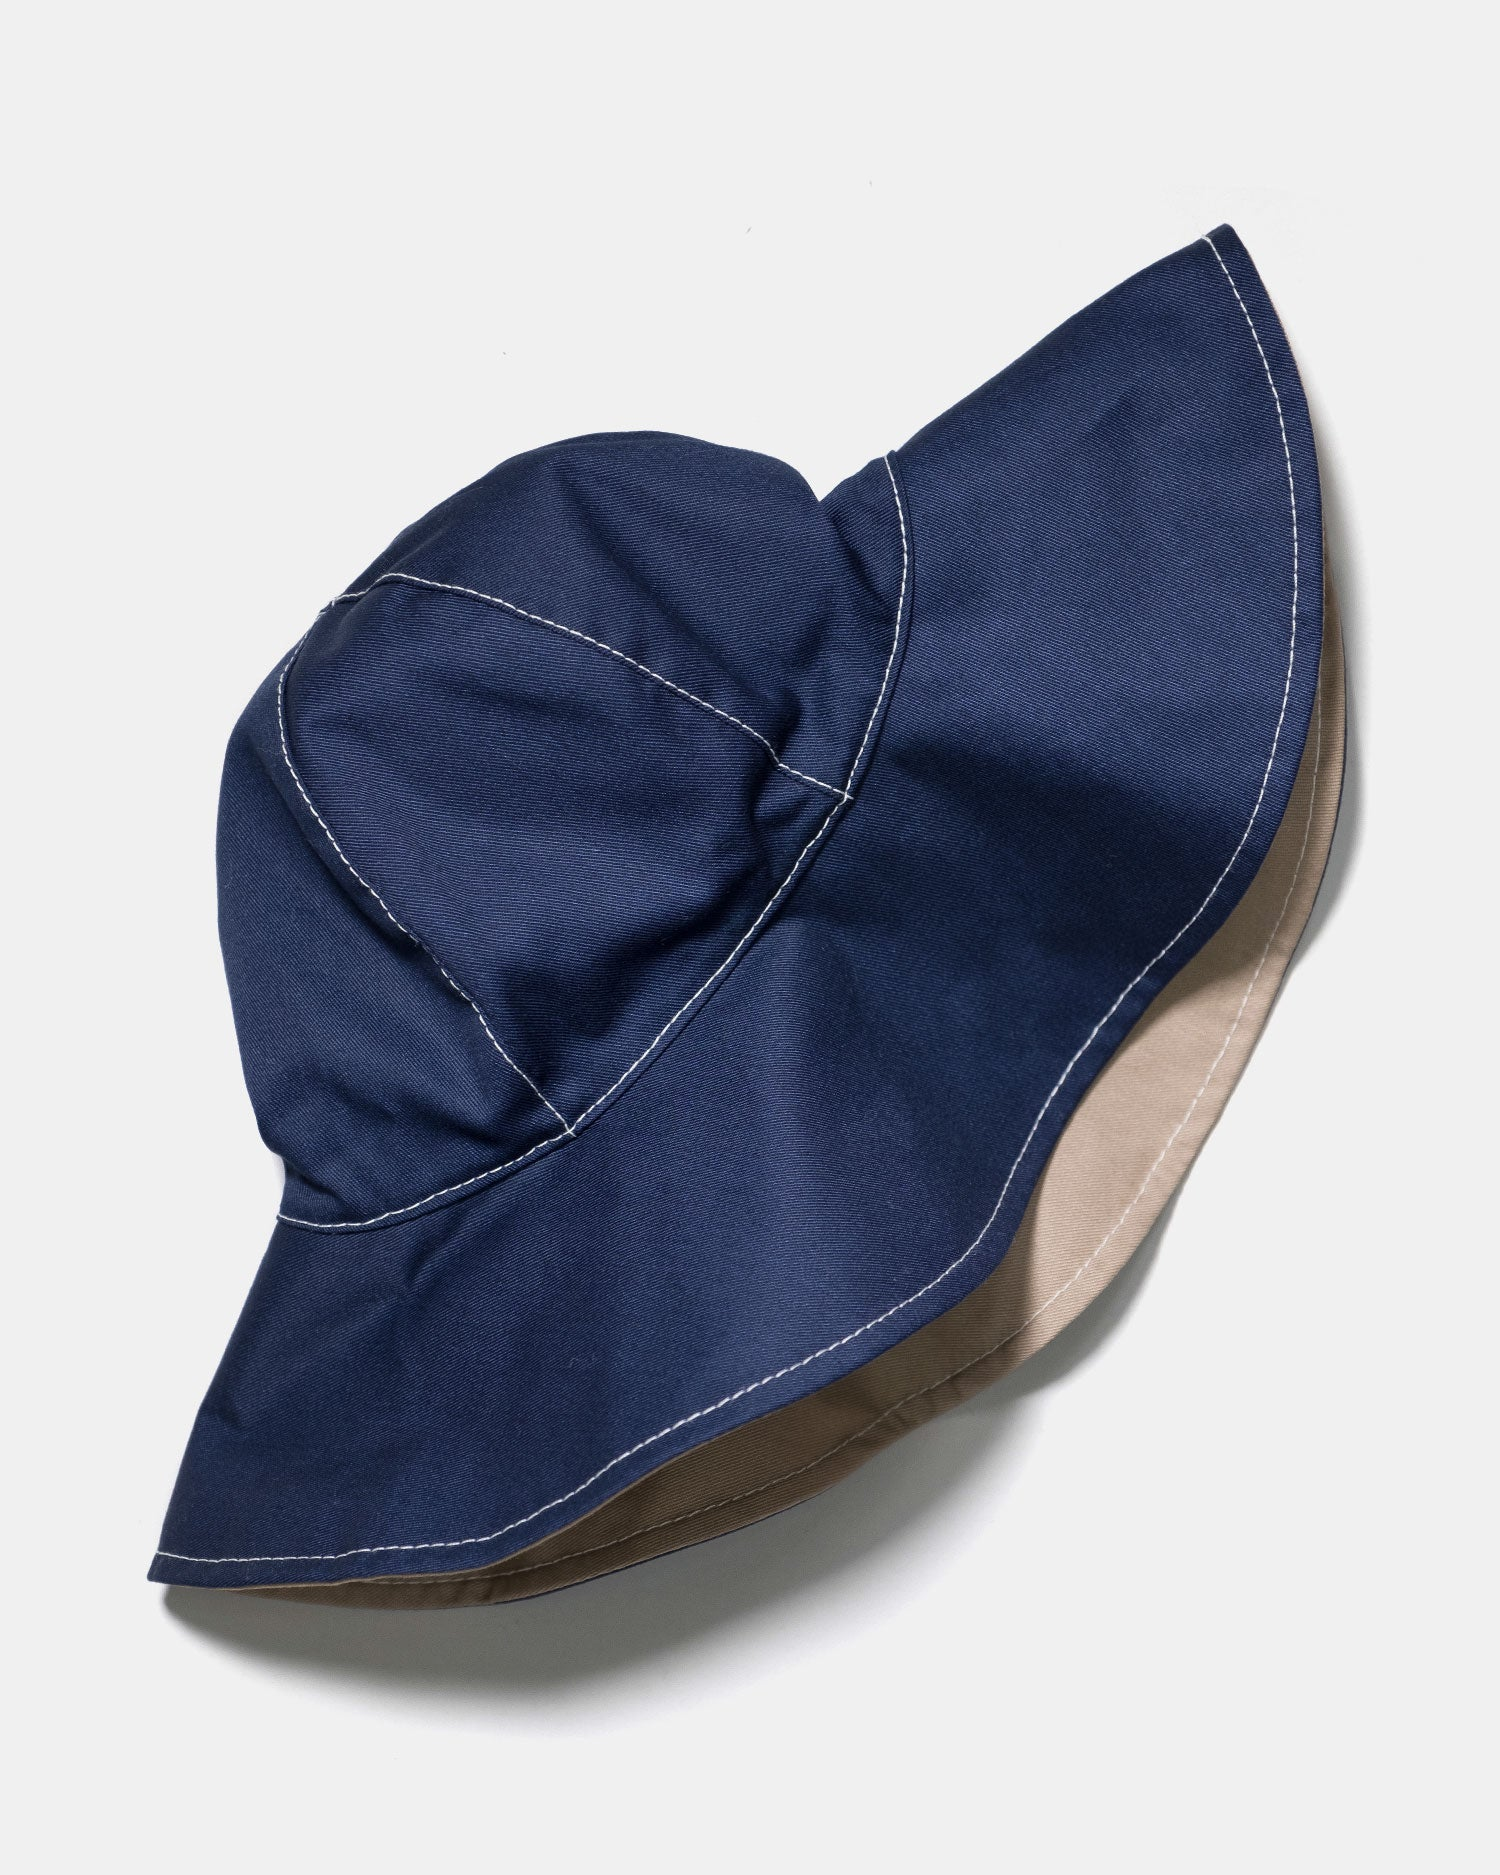 Marni Reversible Floppy Hat Navy